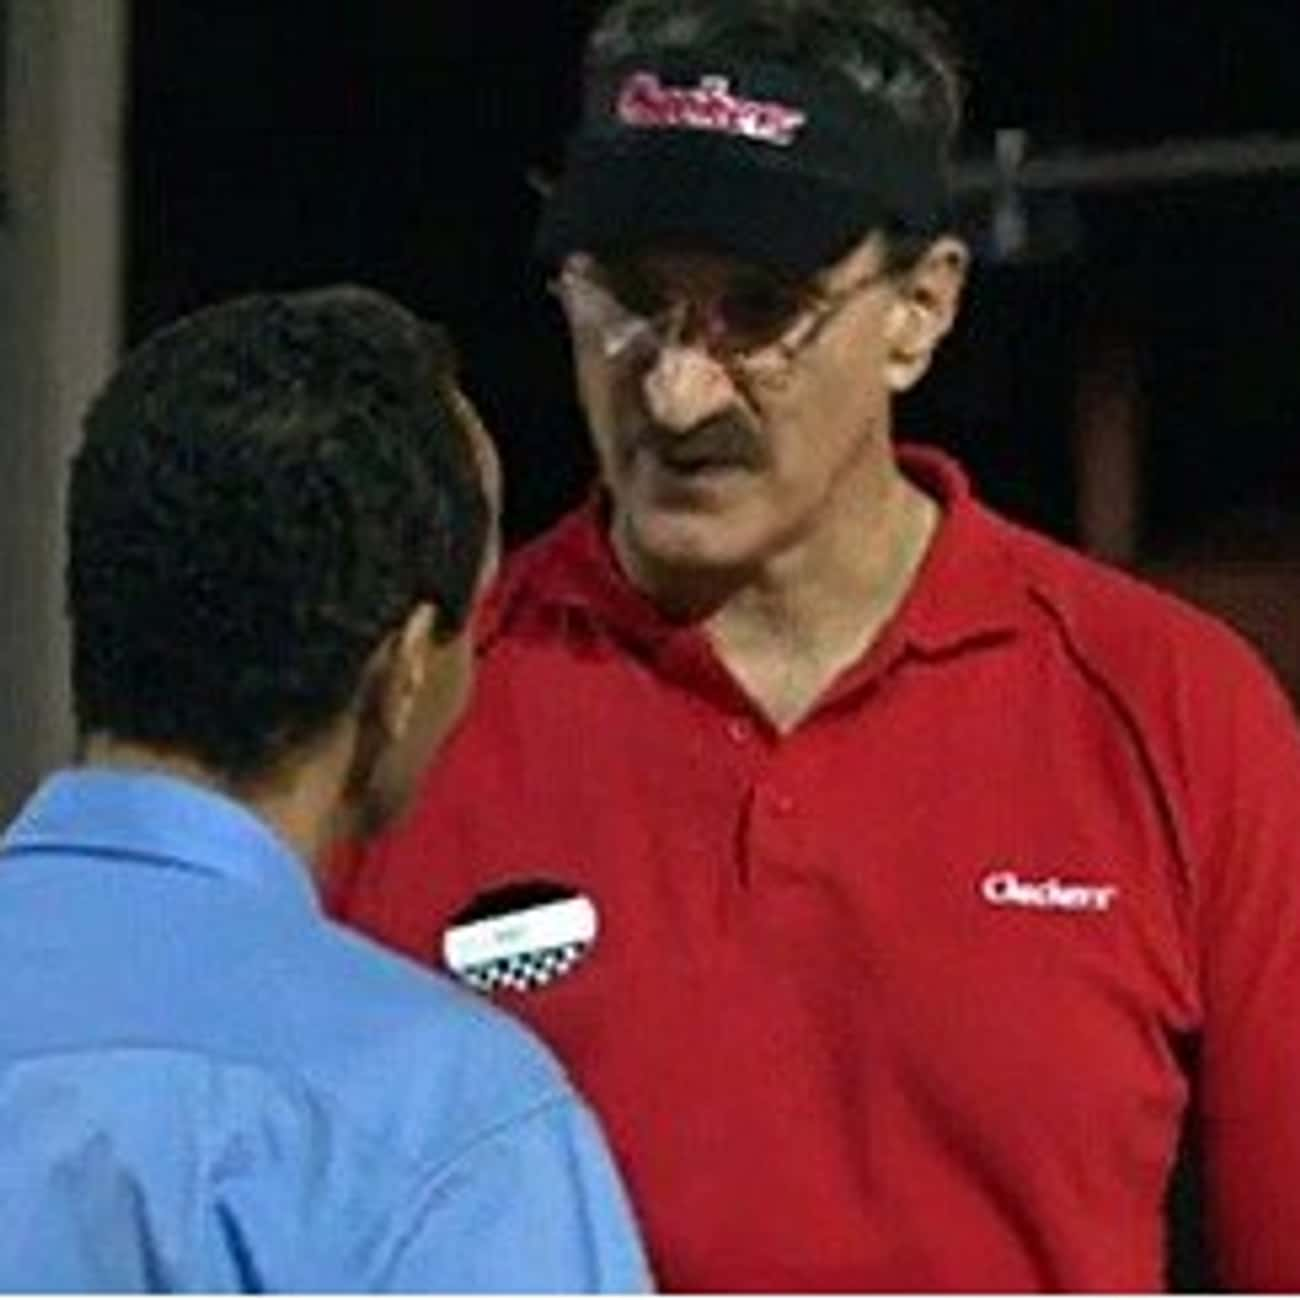 Checkers is listed (or ranked) 3 on the list The Best Undercover Boss Episodes